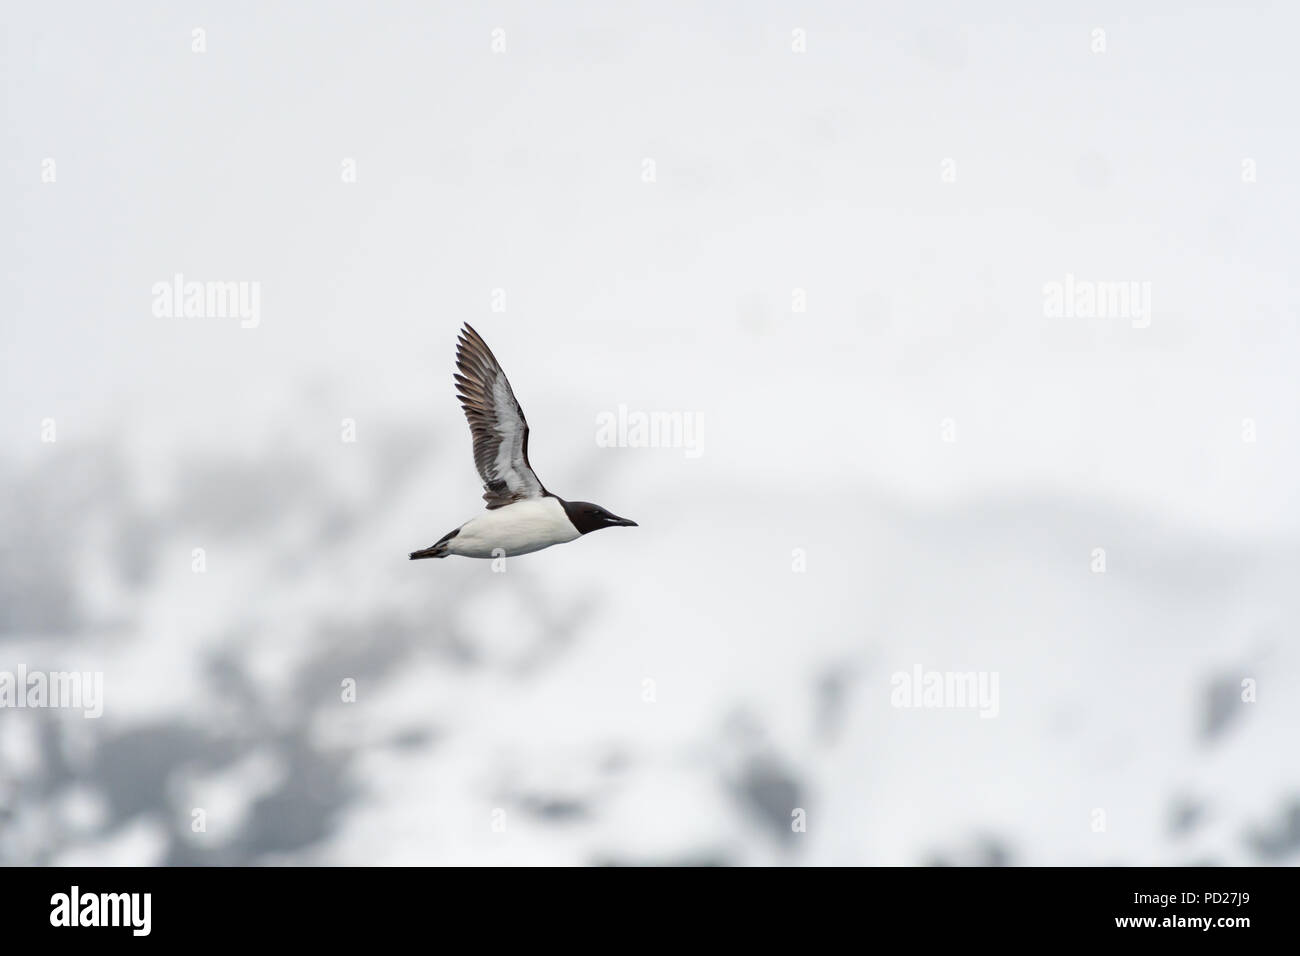 A Brünnich's guillemot (Uria lomvia) also known as thick-billed murre flying near it's nesting grounds on the cliff at Alkefjellet in the Svalbard. Stock Photo